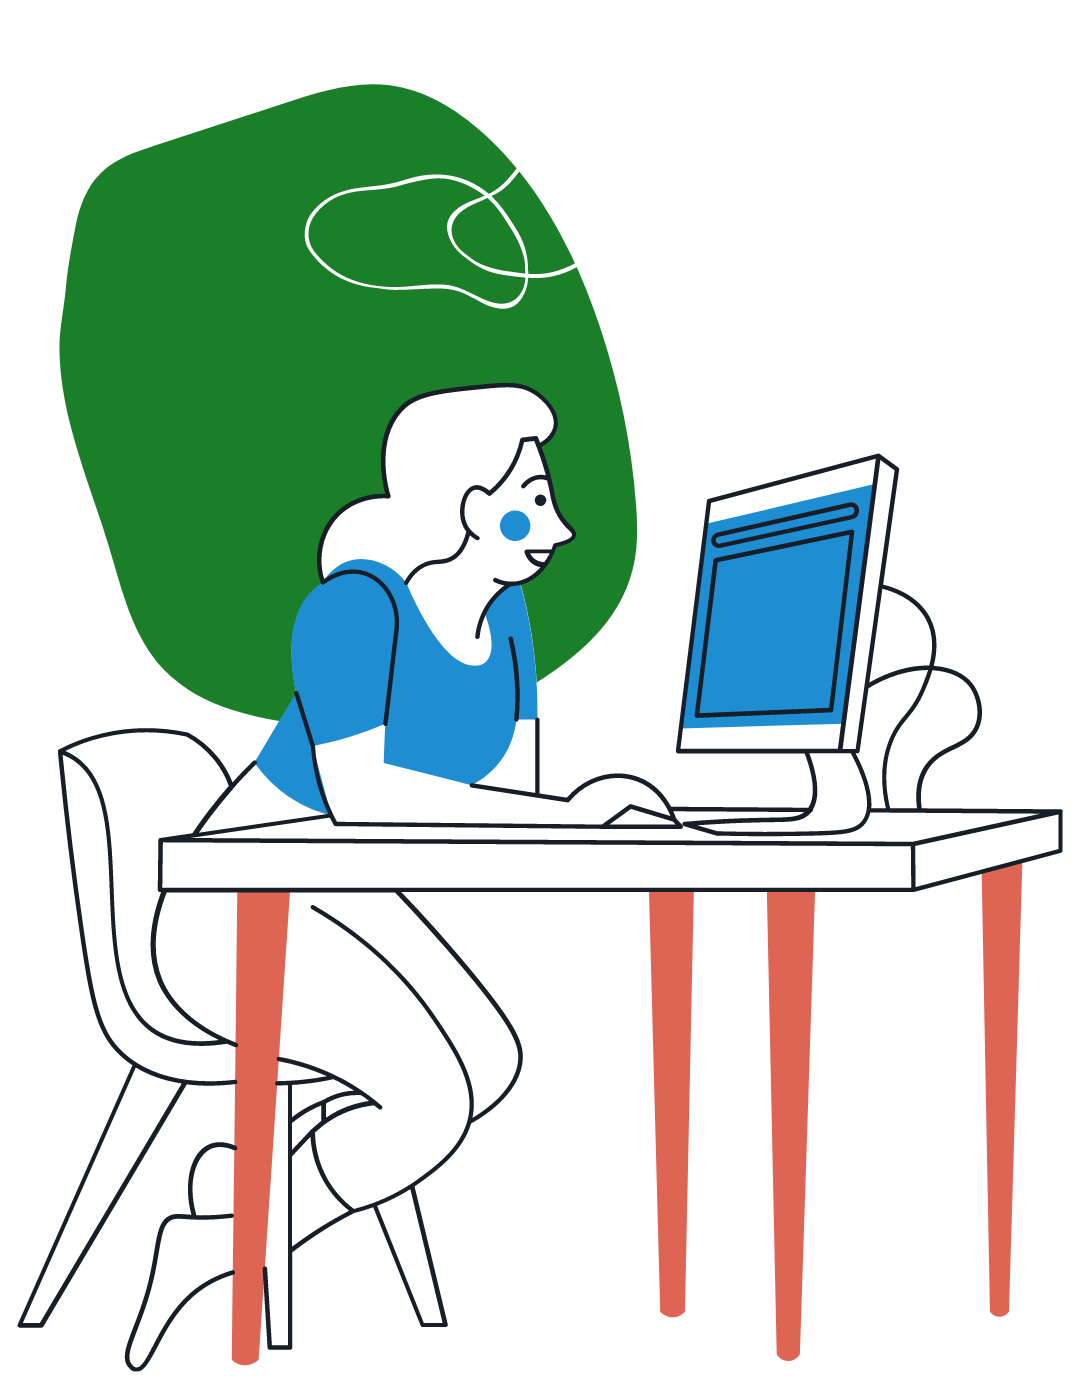 Woman sitting at desk reading